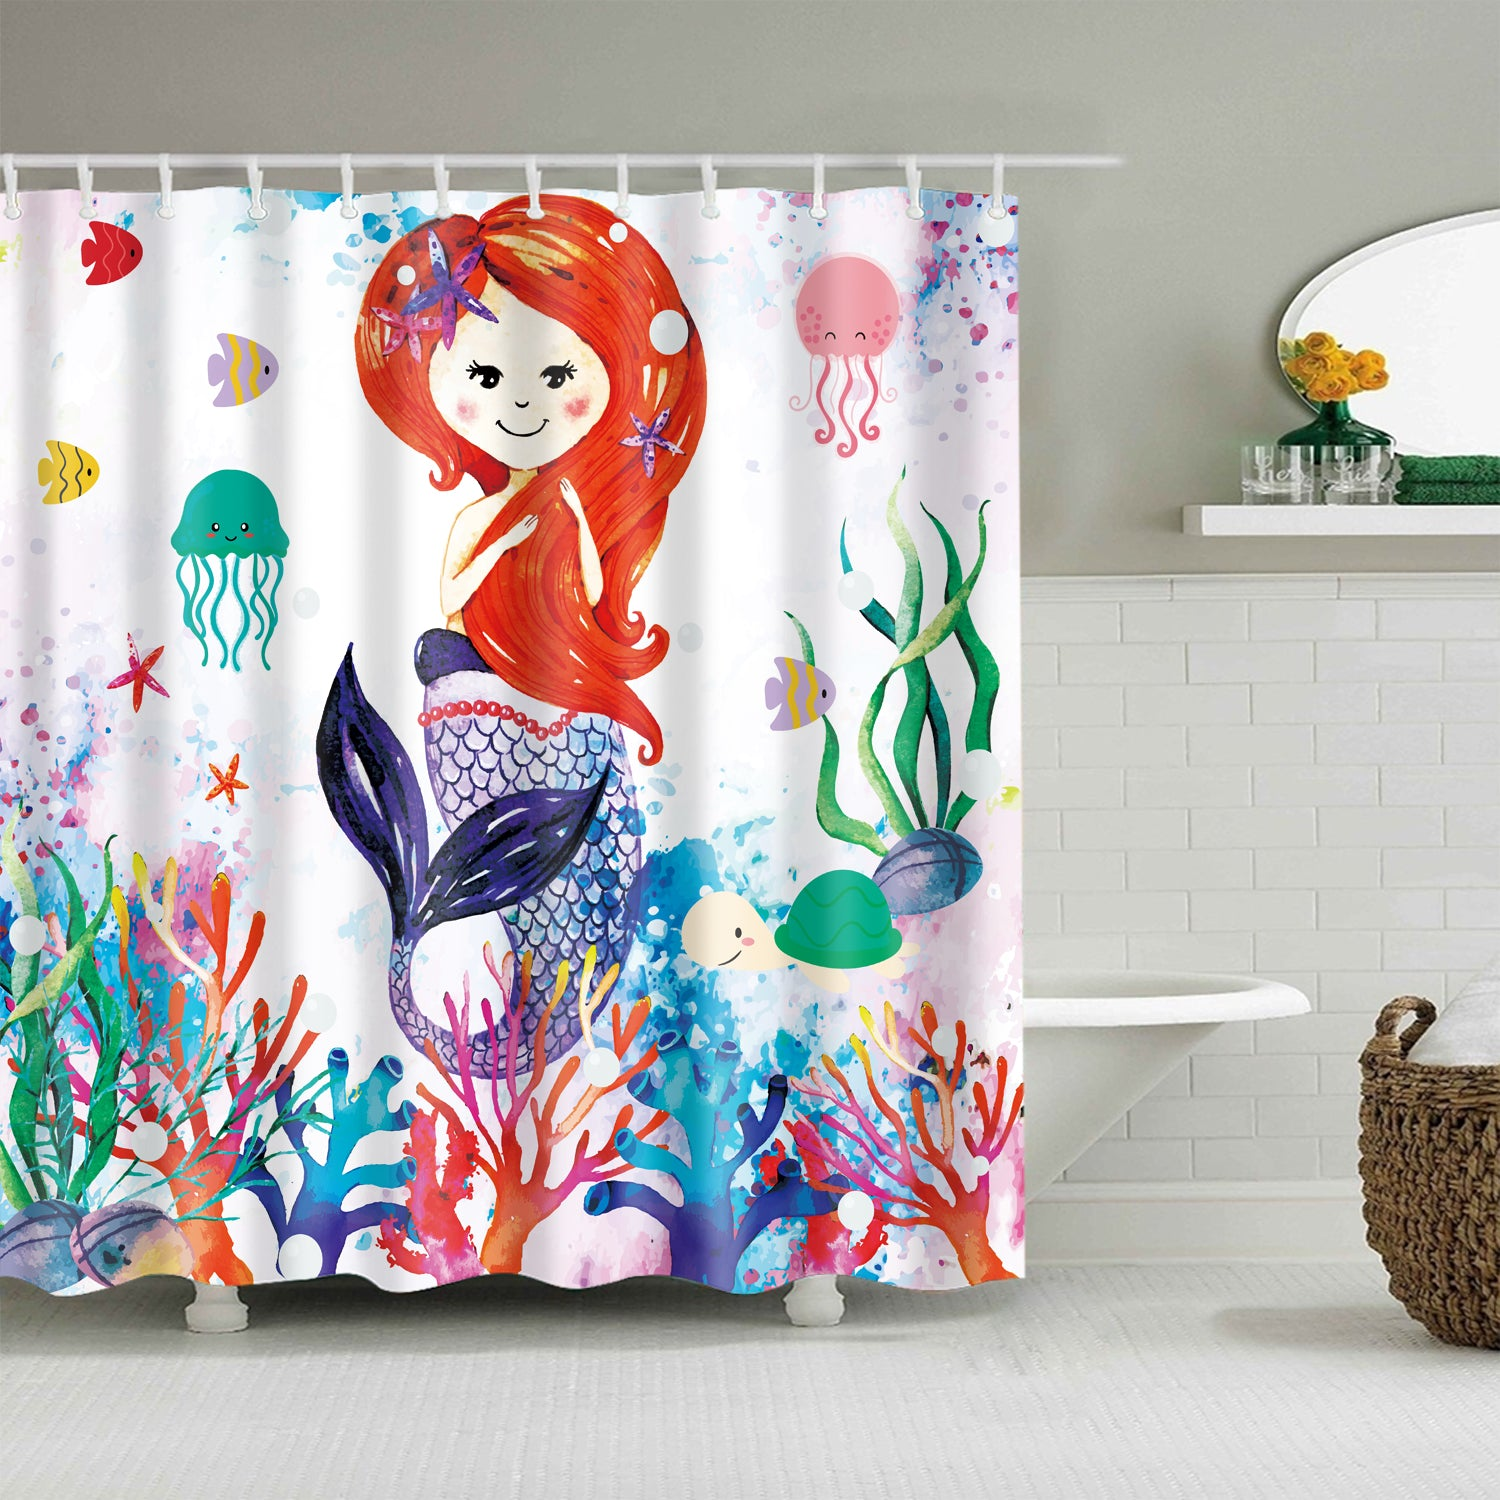 Ocean Scene Coral Kids Mermaid Shower Curtain Bathroom